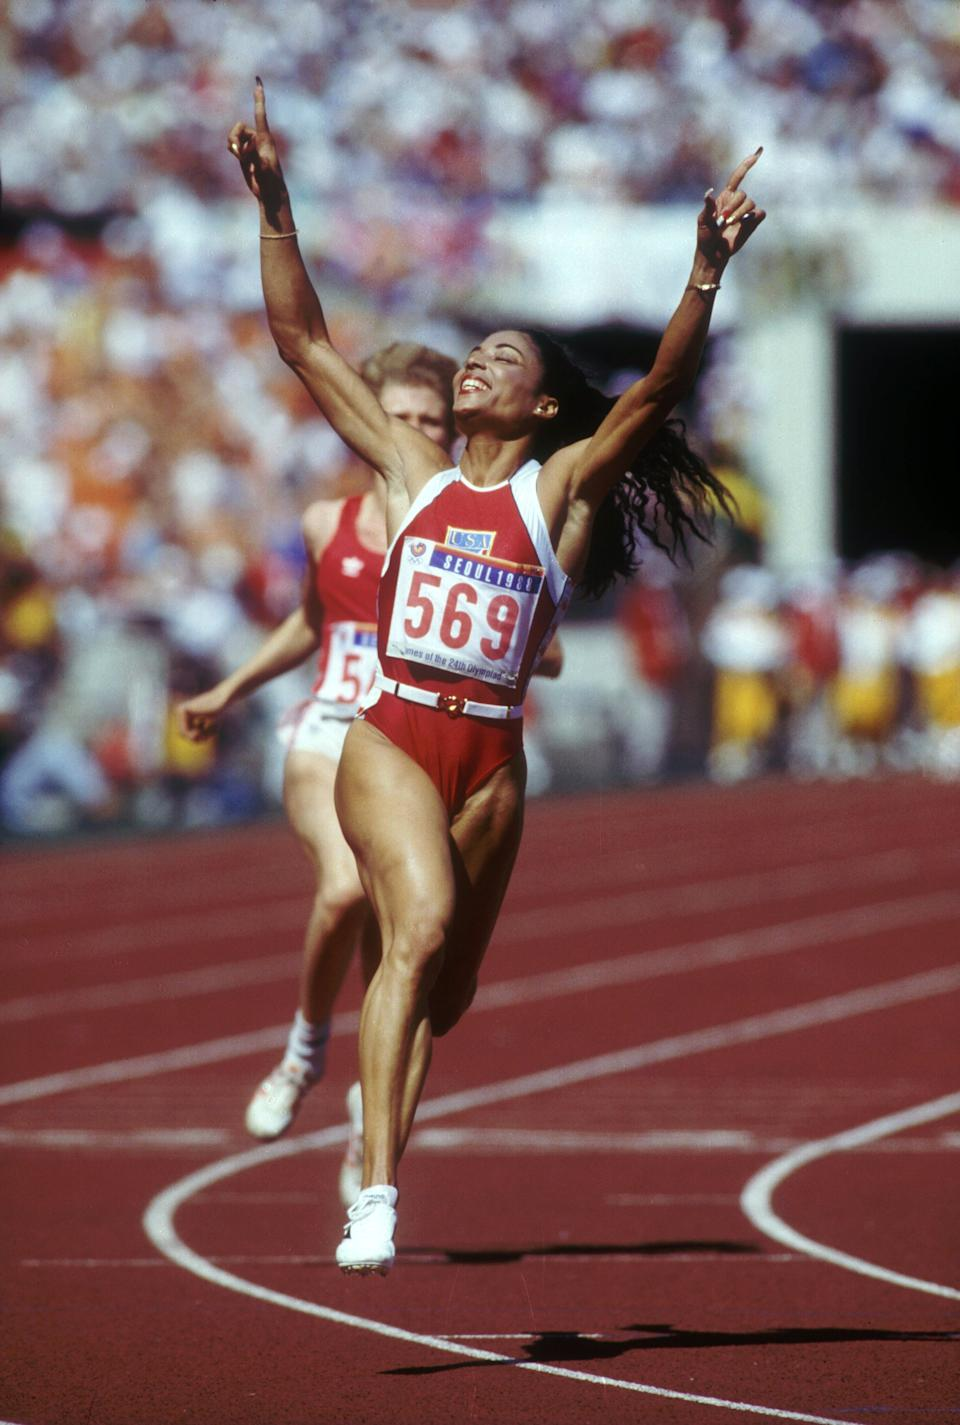 No other Olympian had or has as much style, charisma, or athletic prowess than Florence Griffith-Joyner. And if that name doesn't ring a bell, maybe her nickname FloJo will. Griffith-Joyner took home three gold medals, as well as a silver, at the Seoul Olympics in 1988. FloJo also broke the world record for the 100-meter race even before stepping onto the Olympic track. (Mike Powell/Allsport)